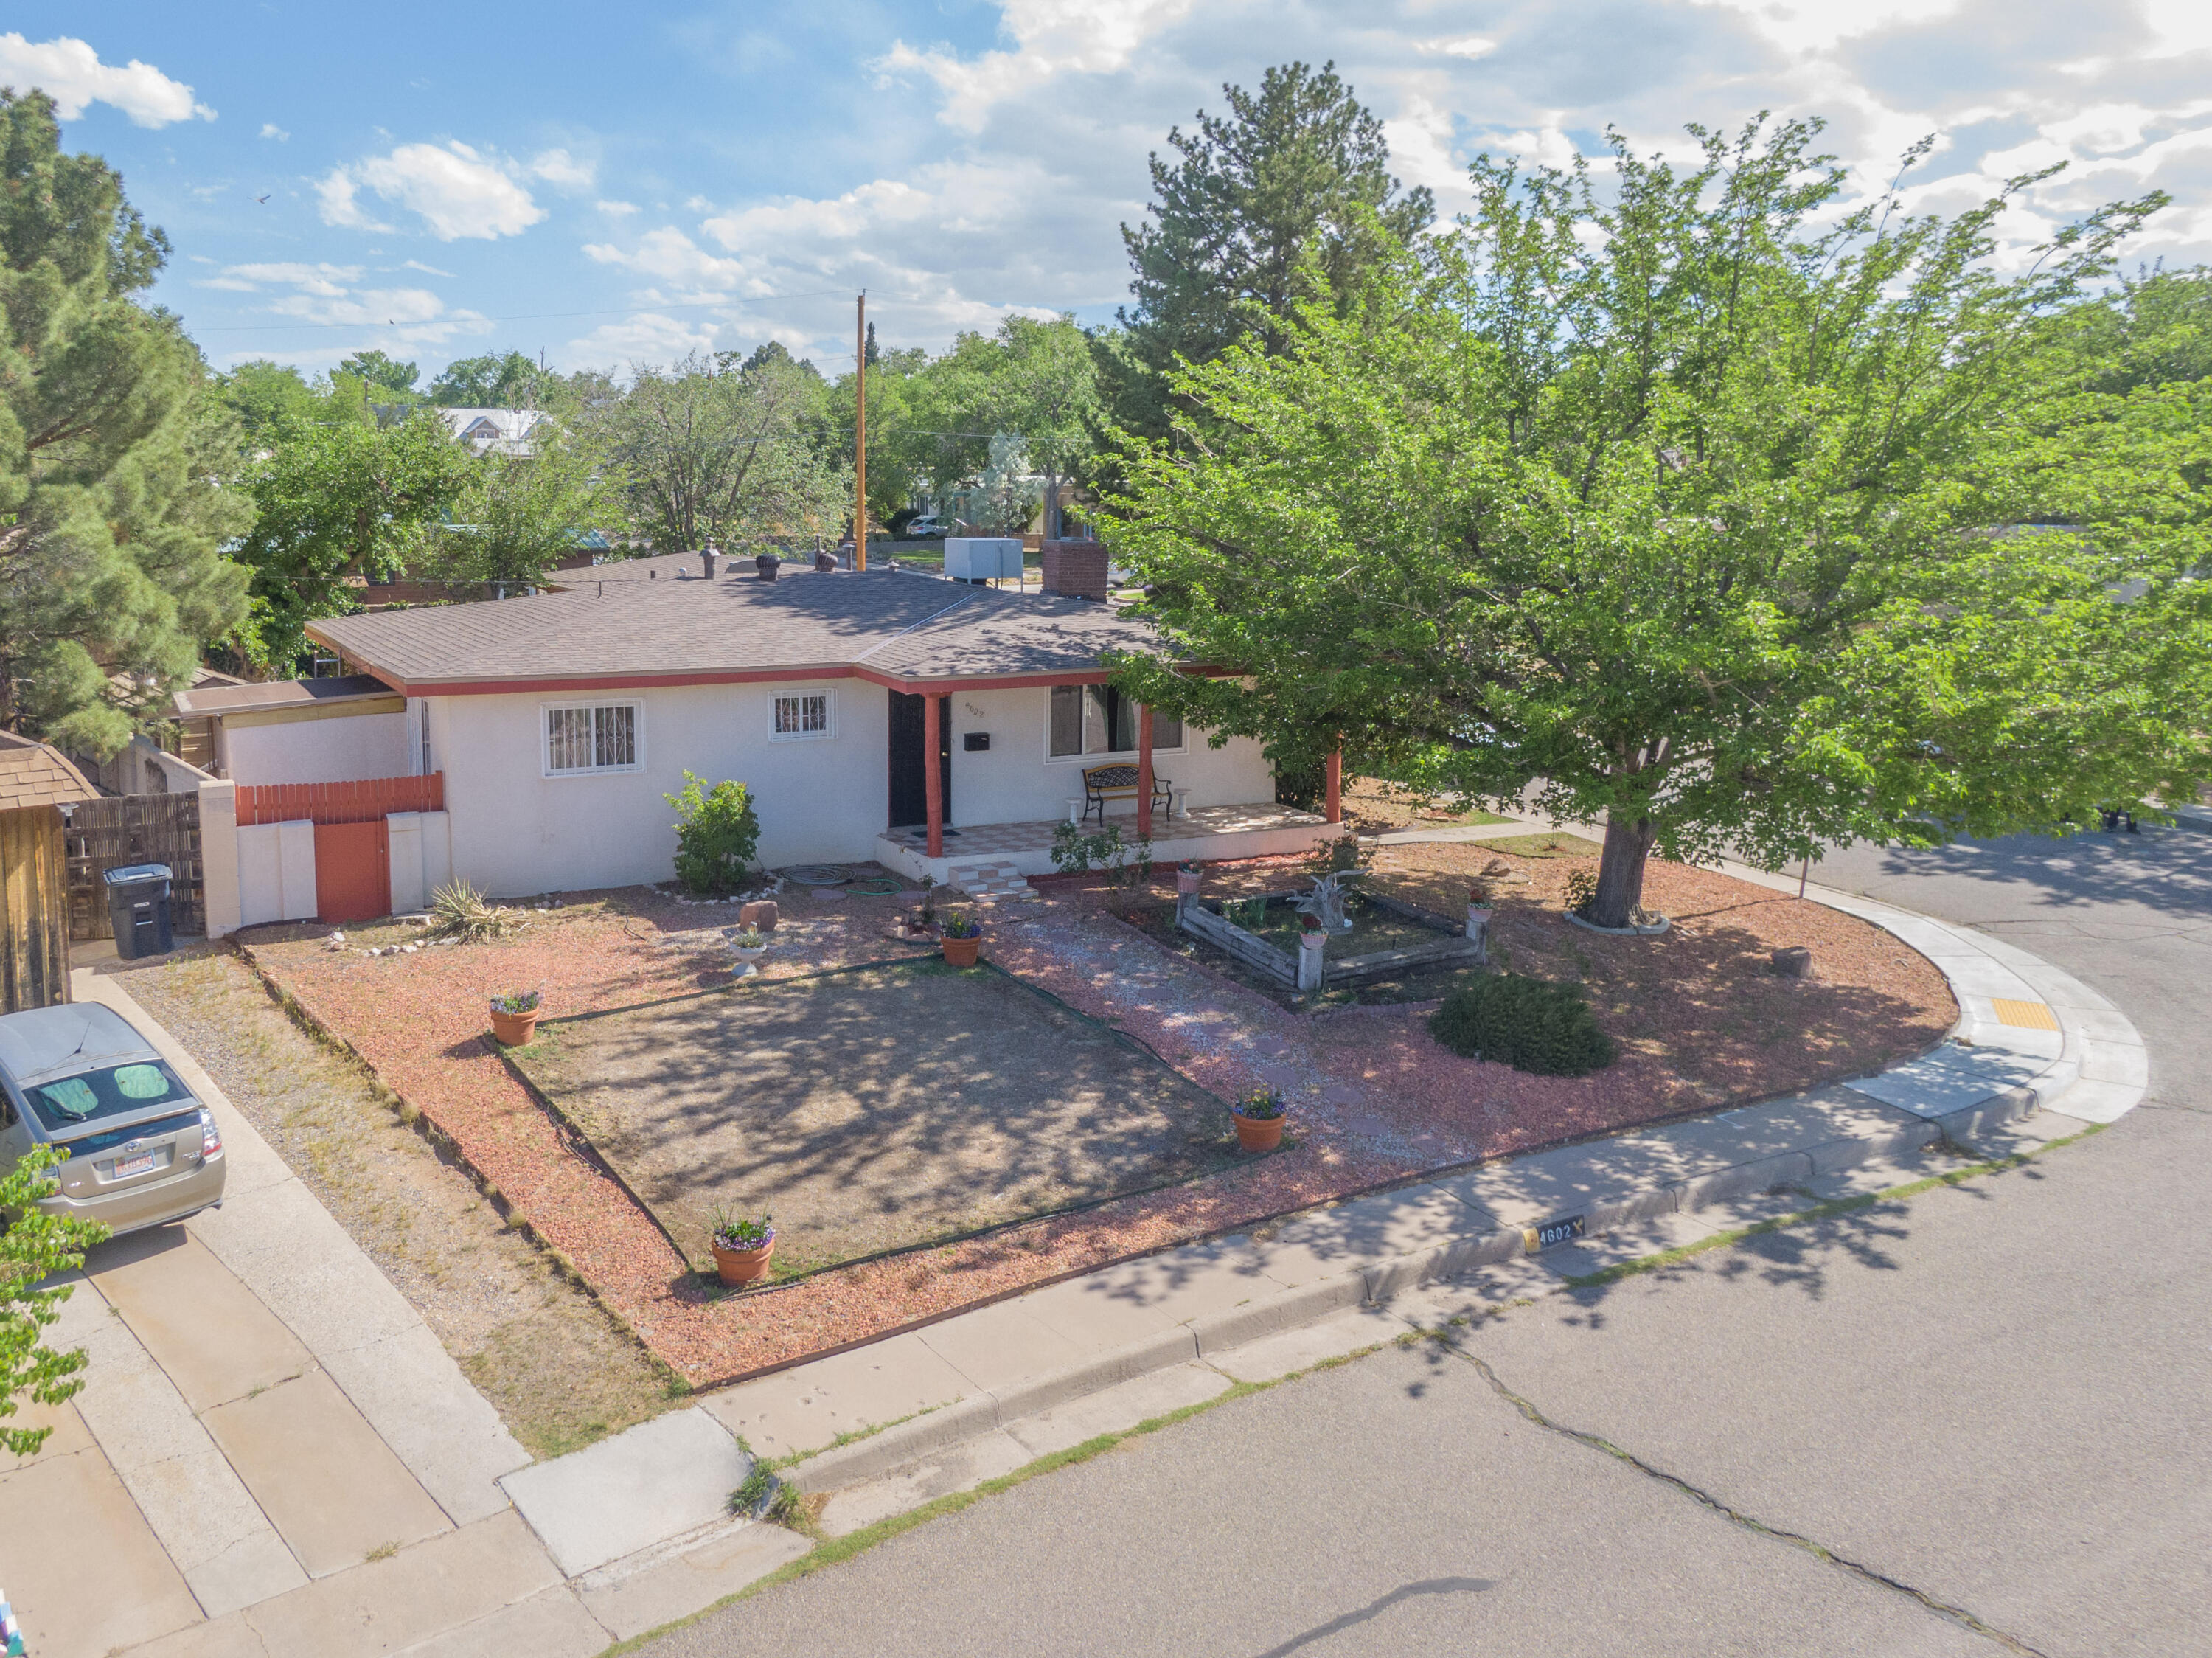 Welcome to this Charming, Single-Story, 3-Bedroom Home in Albuquerque's Sought-After *Ridgecrest* Neighborhood! Situated on a Large, Corner Lot w/ Mature Shade Trees, 4602 Inspiration offers a Flexible Floor Plan with Formal Dining, plus 2 Spacious Living Areas. The Main Living Space presents you with Beautiful, Gleaming Wood Flooring and a Welcoming Wood-Burning Fireplace. The Second Living Area features a toasty Pellet Stove, plus Limitless Possibilities. Envision this Additional Living Space as a Lounge, Game/Rec Room, Exercise Area, Home-Office, or Hobby Room. Newer (2018) Pitched Shingle Roof, Furnace, Water Heater, and Sewer Line! 2 Covered Carport Spaces. Minutes to Nob Hill, UNM, Downtown. Make an appointment to see this Home today!